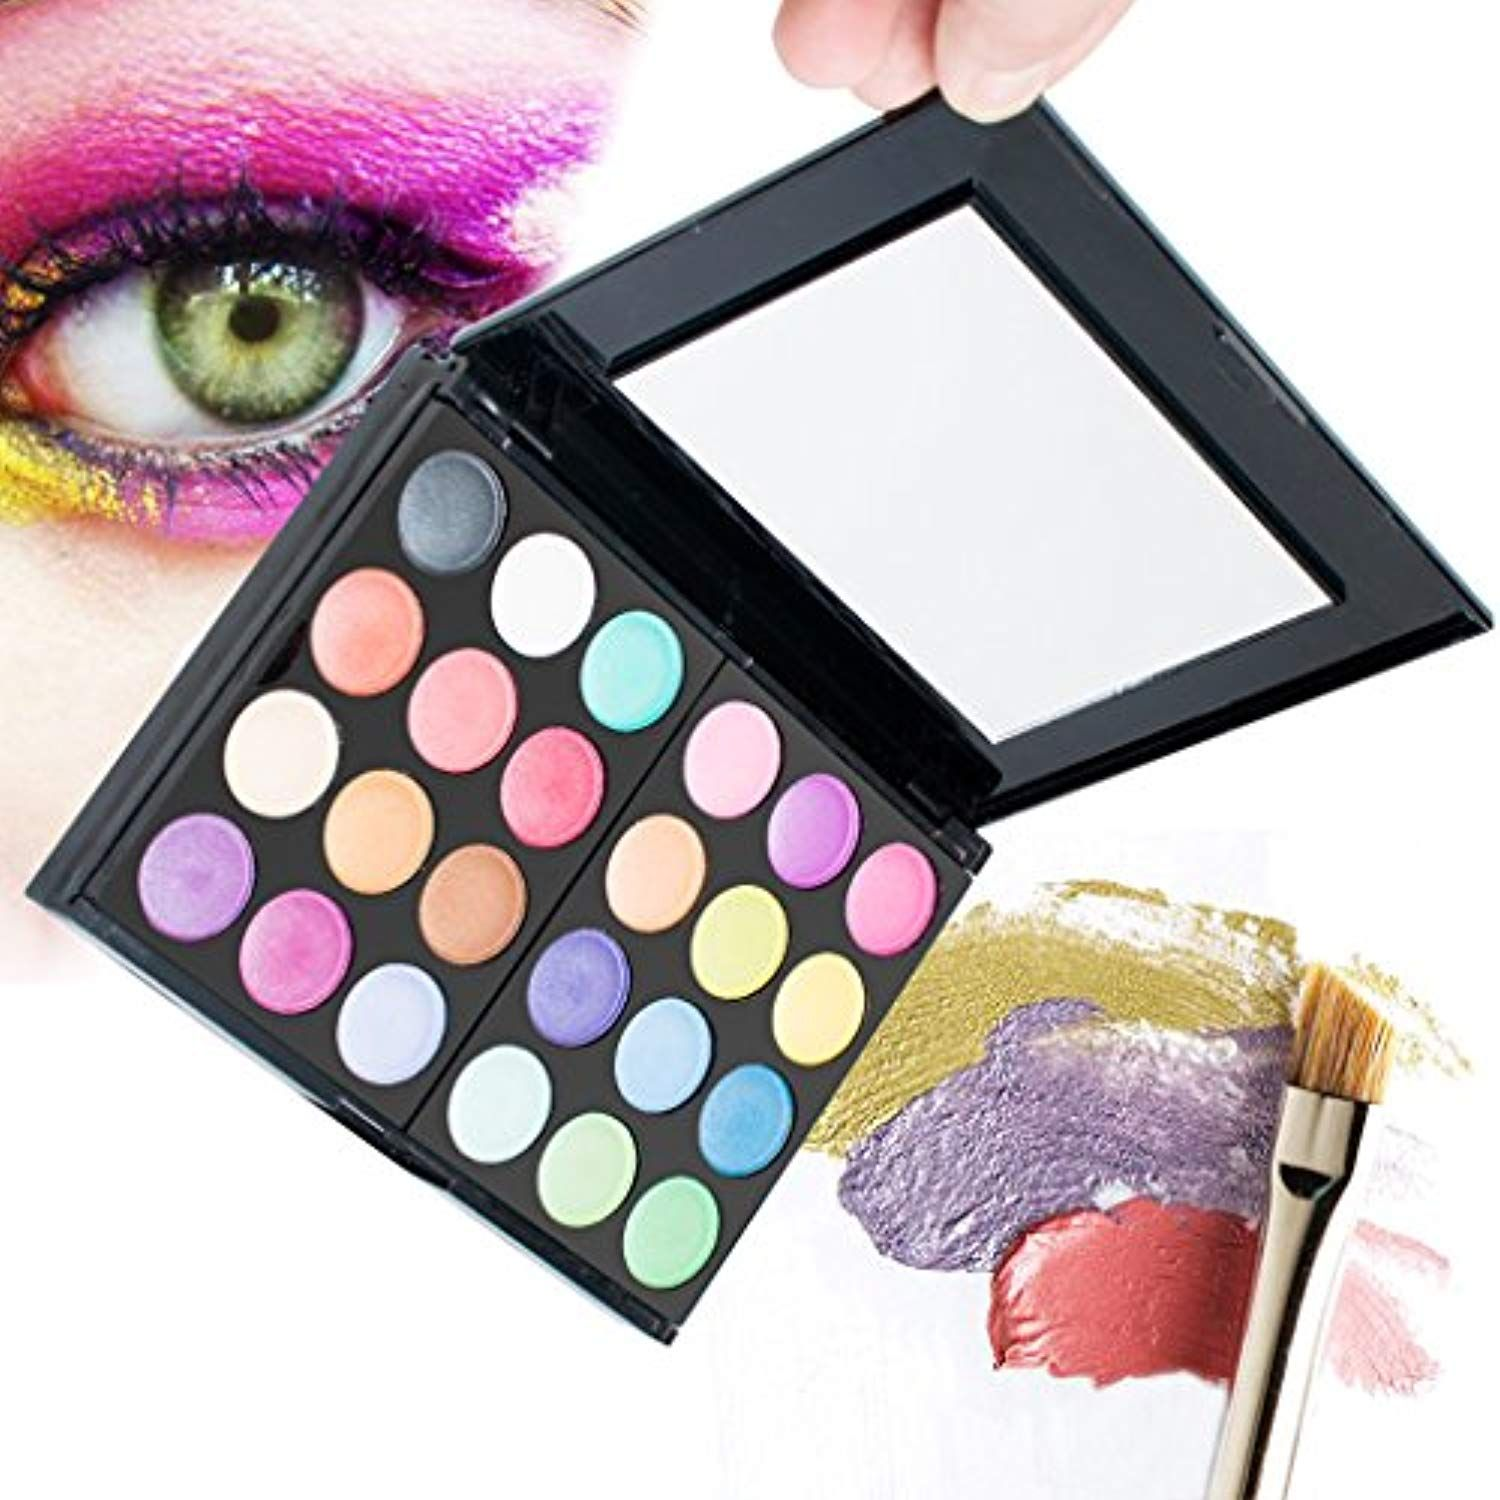 Pro Warm Colors Matte Shimmer Eyeshadow Palette Makeup Kit